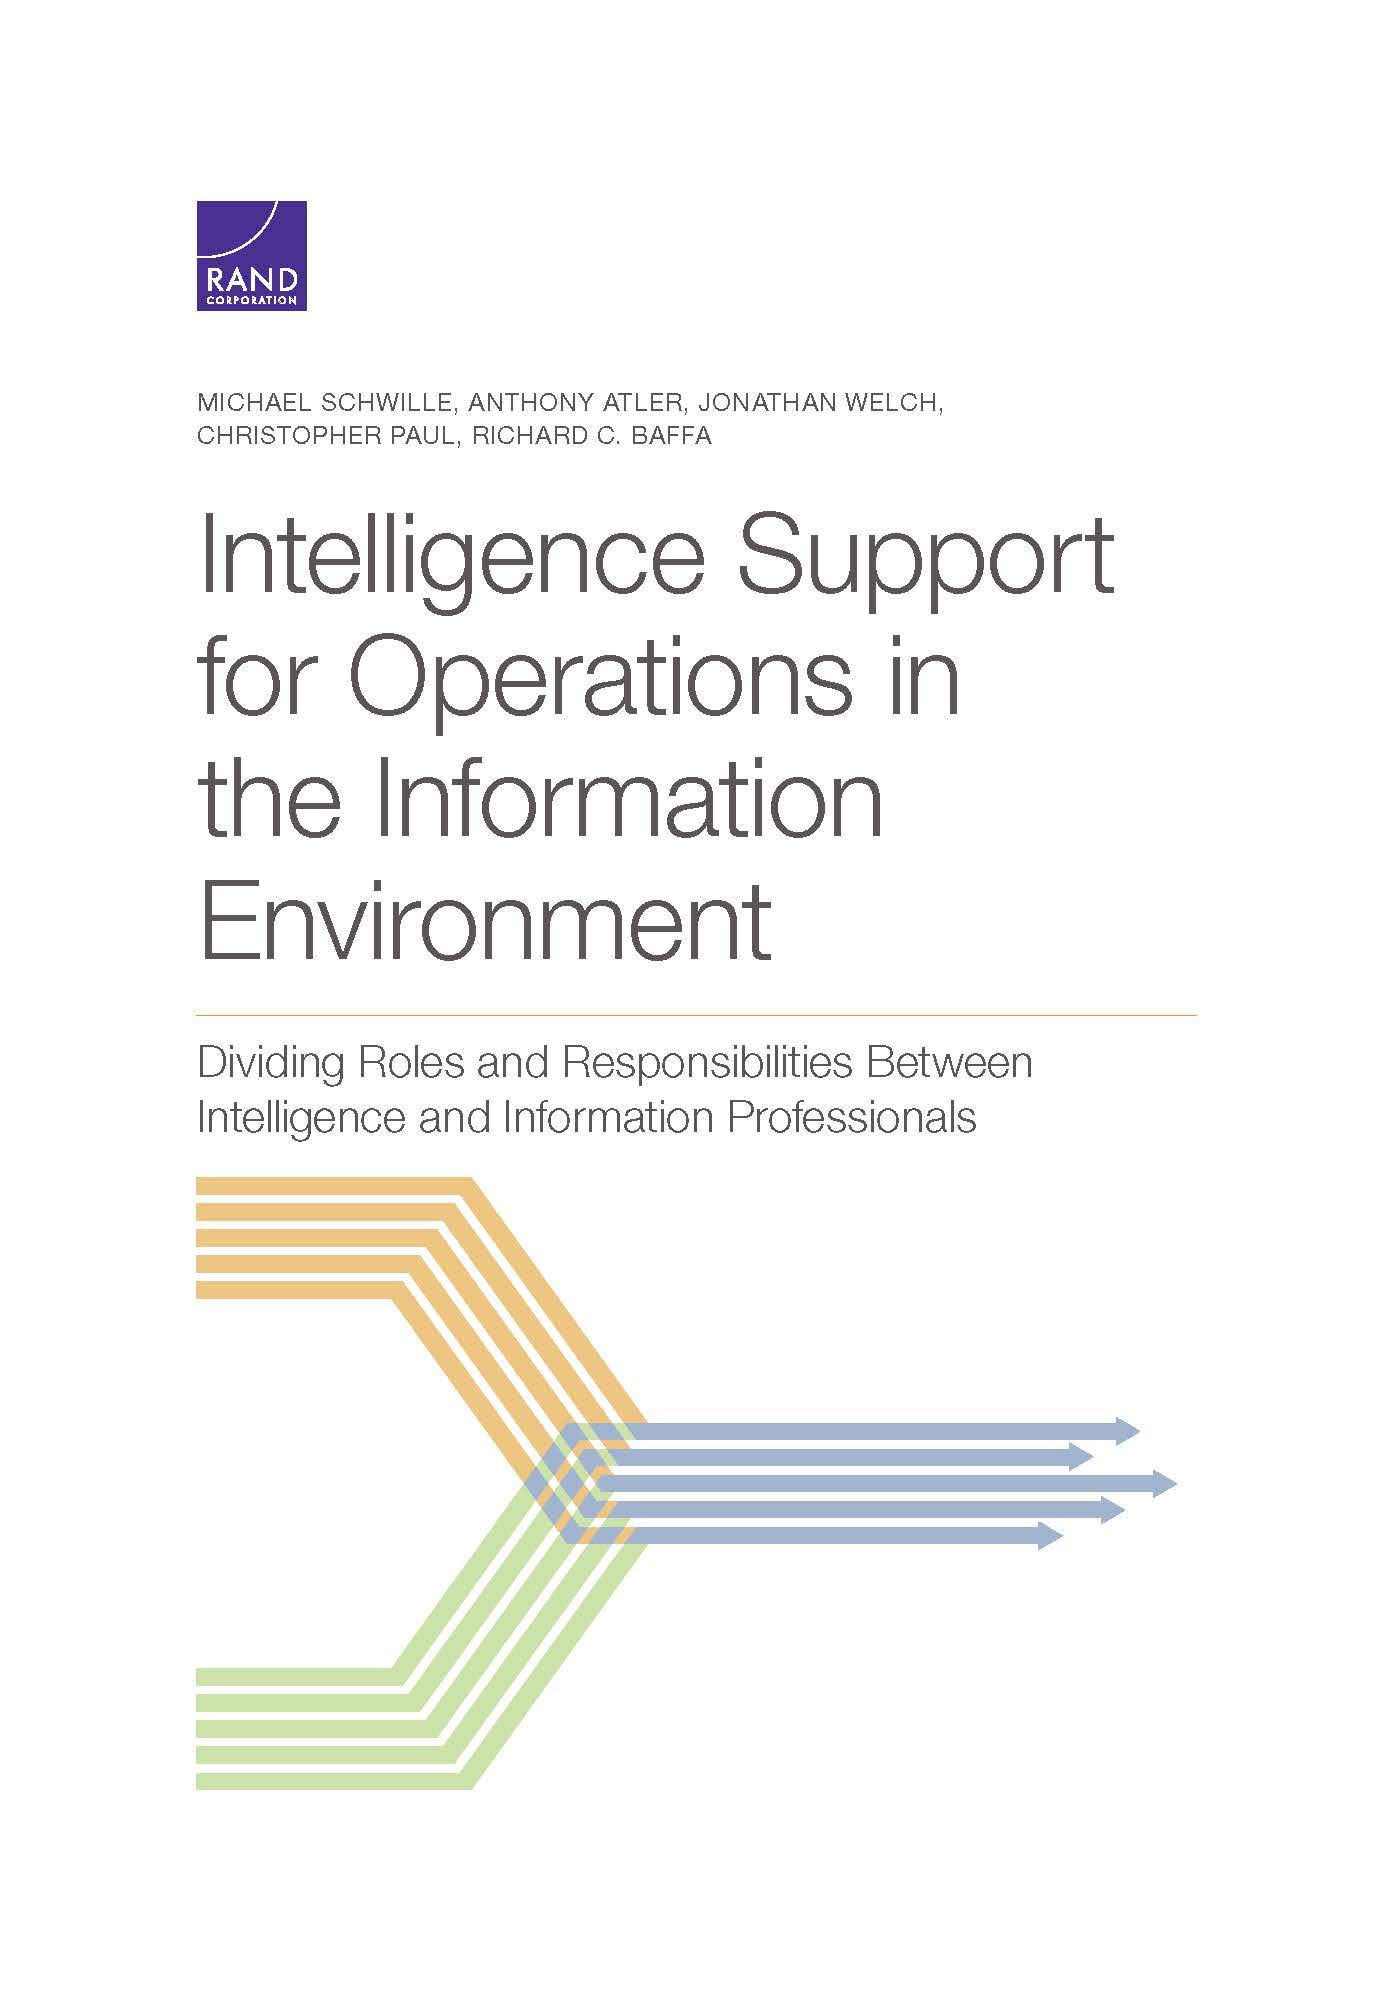 [#INTELLIGENCE] Livre: «Intelligence Support for Operations in the Information Environment: Dividing Roles and Responsibilities Between Intelligence and Information Professionals»